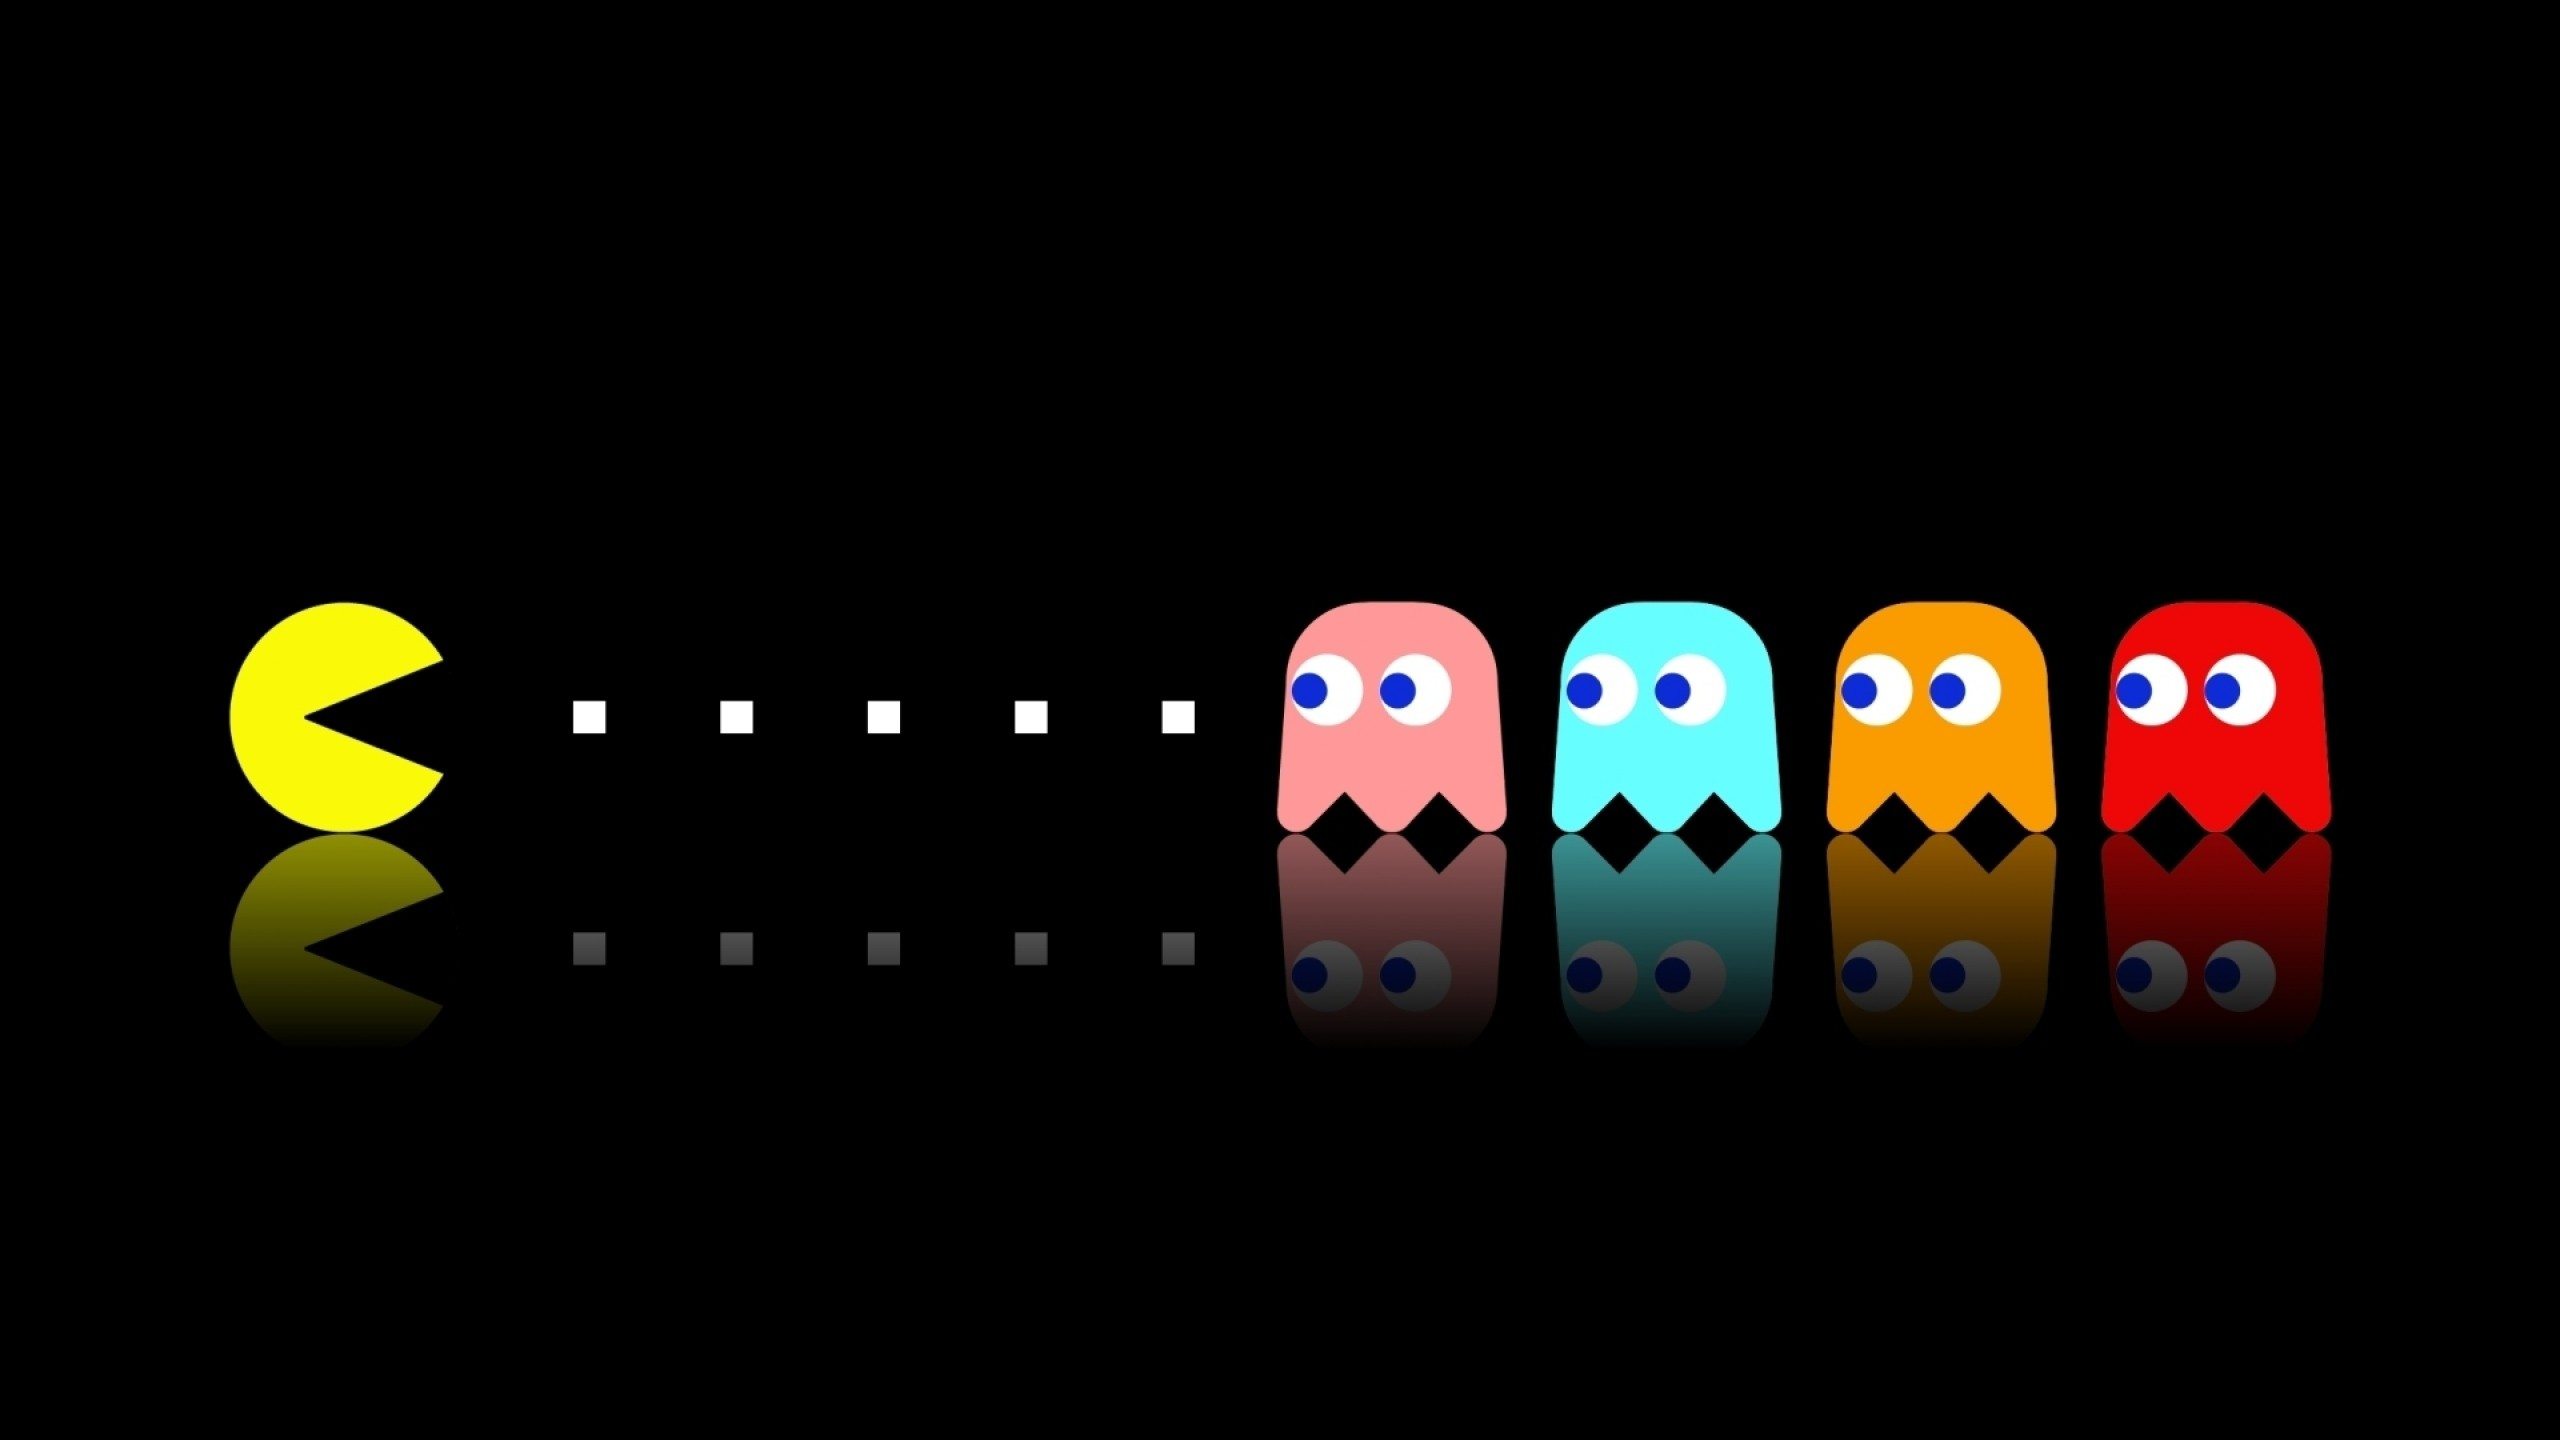 2560x1440 Download Wallpaper  pacman, game, multi-colored, eating Mac .